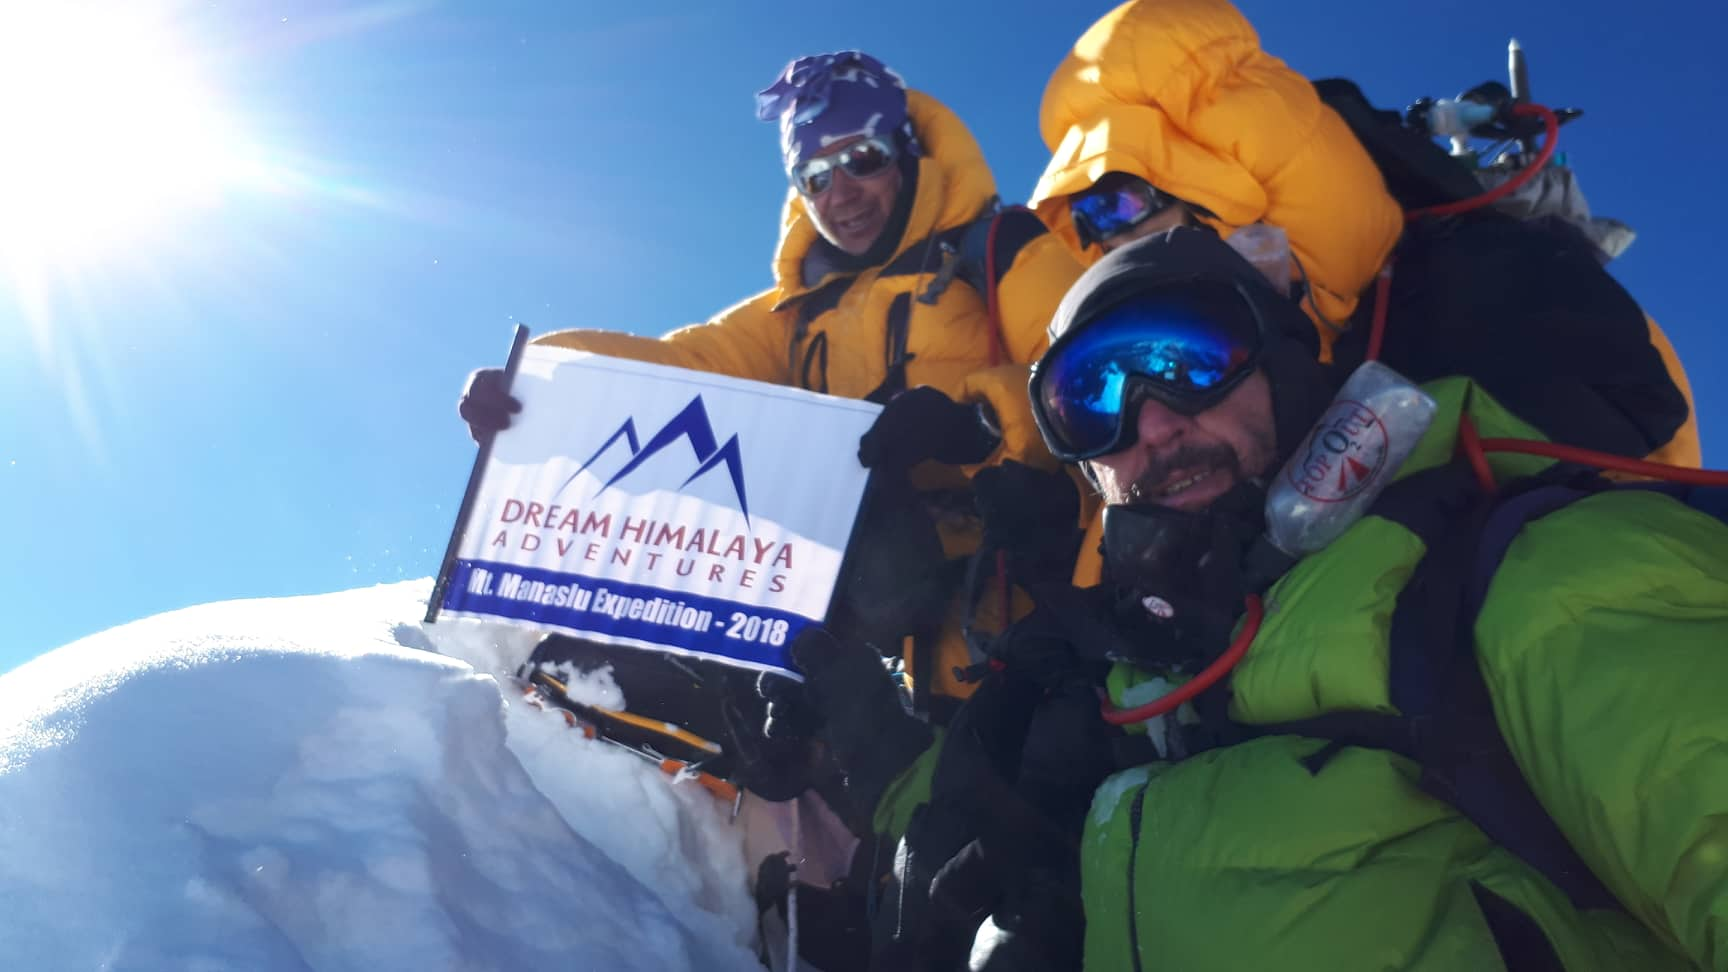 Karma on Manaslu Summit